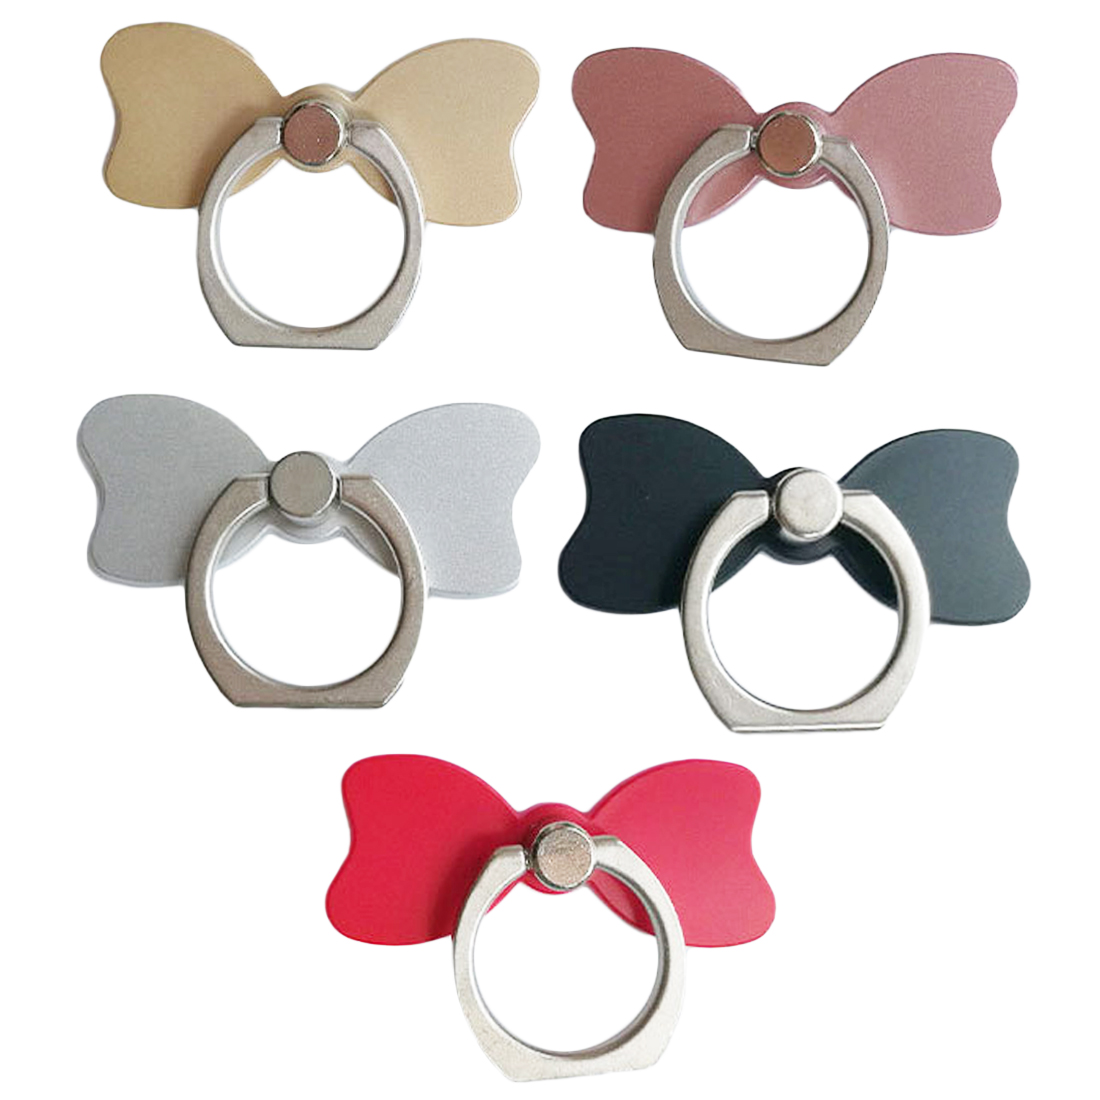 Etmakit  Mobile Phone Holder 360 Degree Bow Tie Finger Ring Smartphone Stand Holder Stand For IPhone IPad Huawei Xiaomi